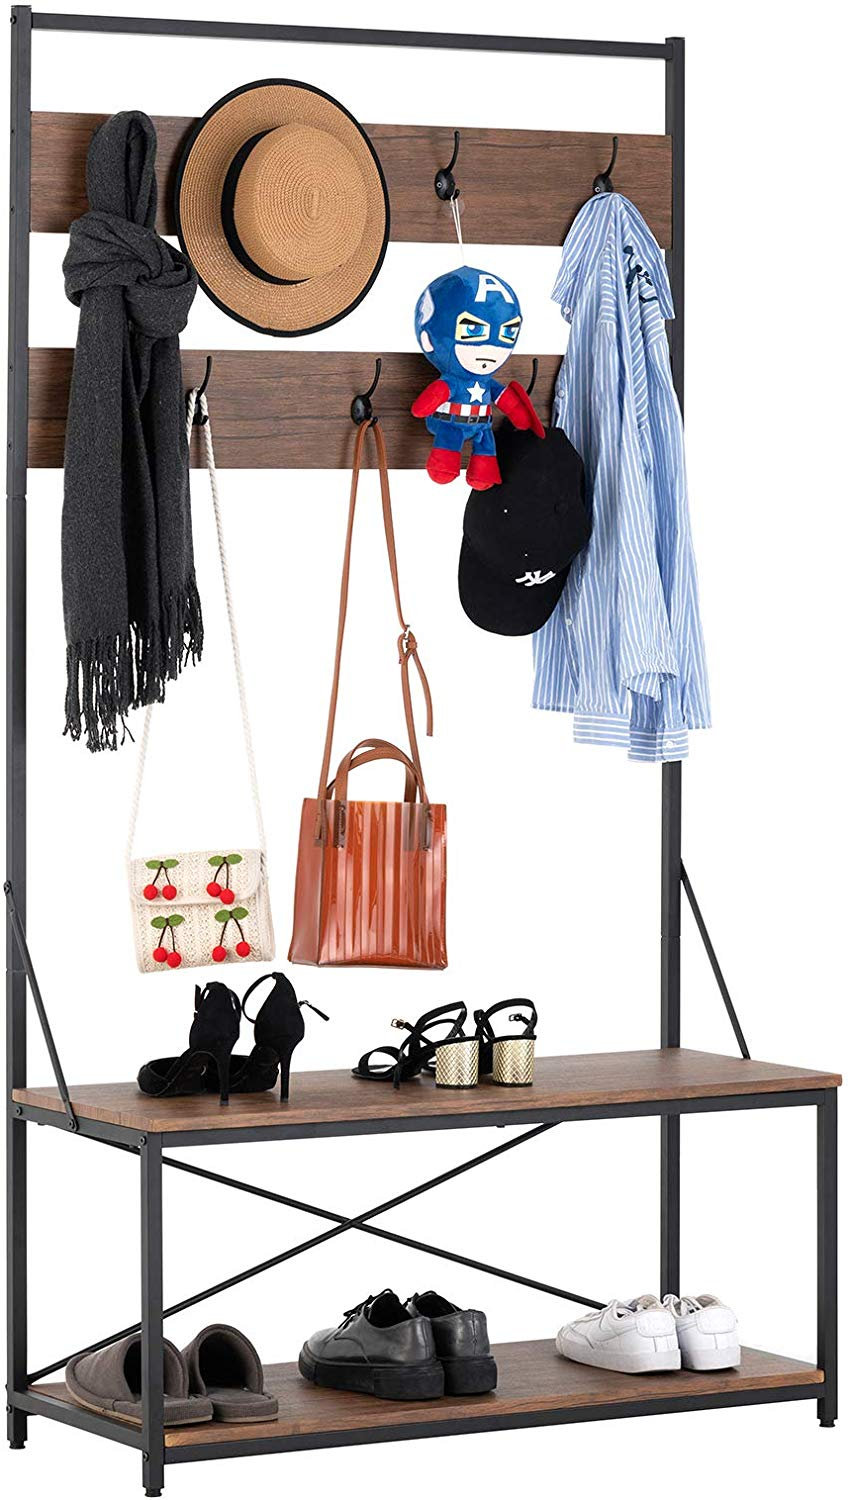 mecor 3 in 1 industrial coat rack hall tree entryway shoe bench with 2 tier shoe bench and coat rack with 7 hooks large size easy to assemble